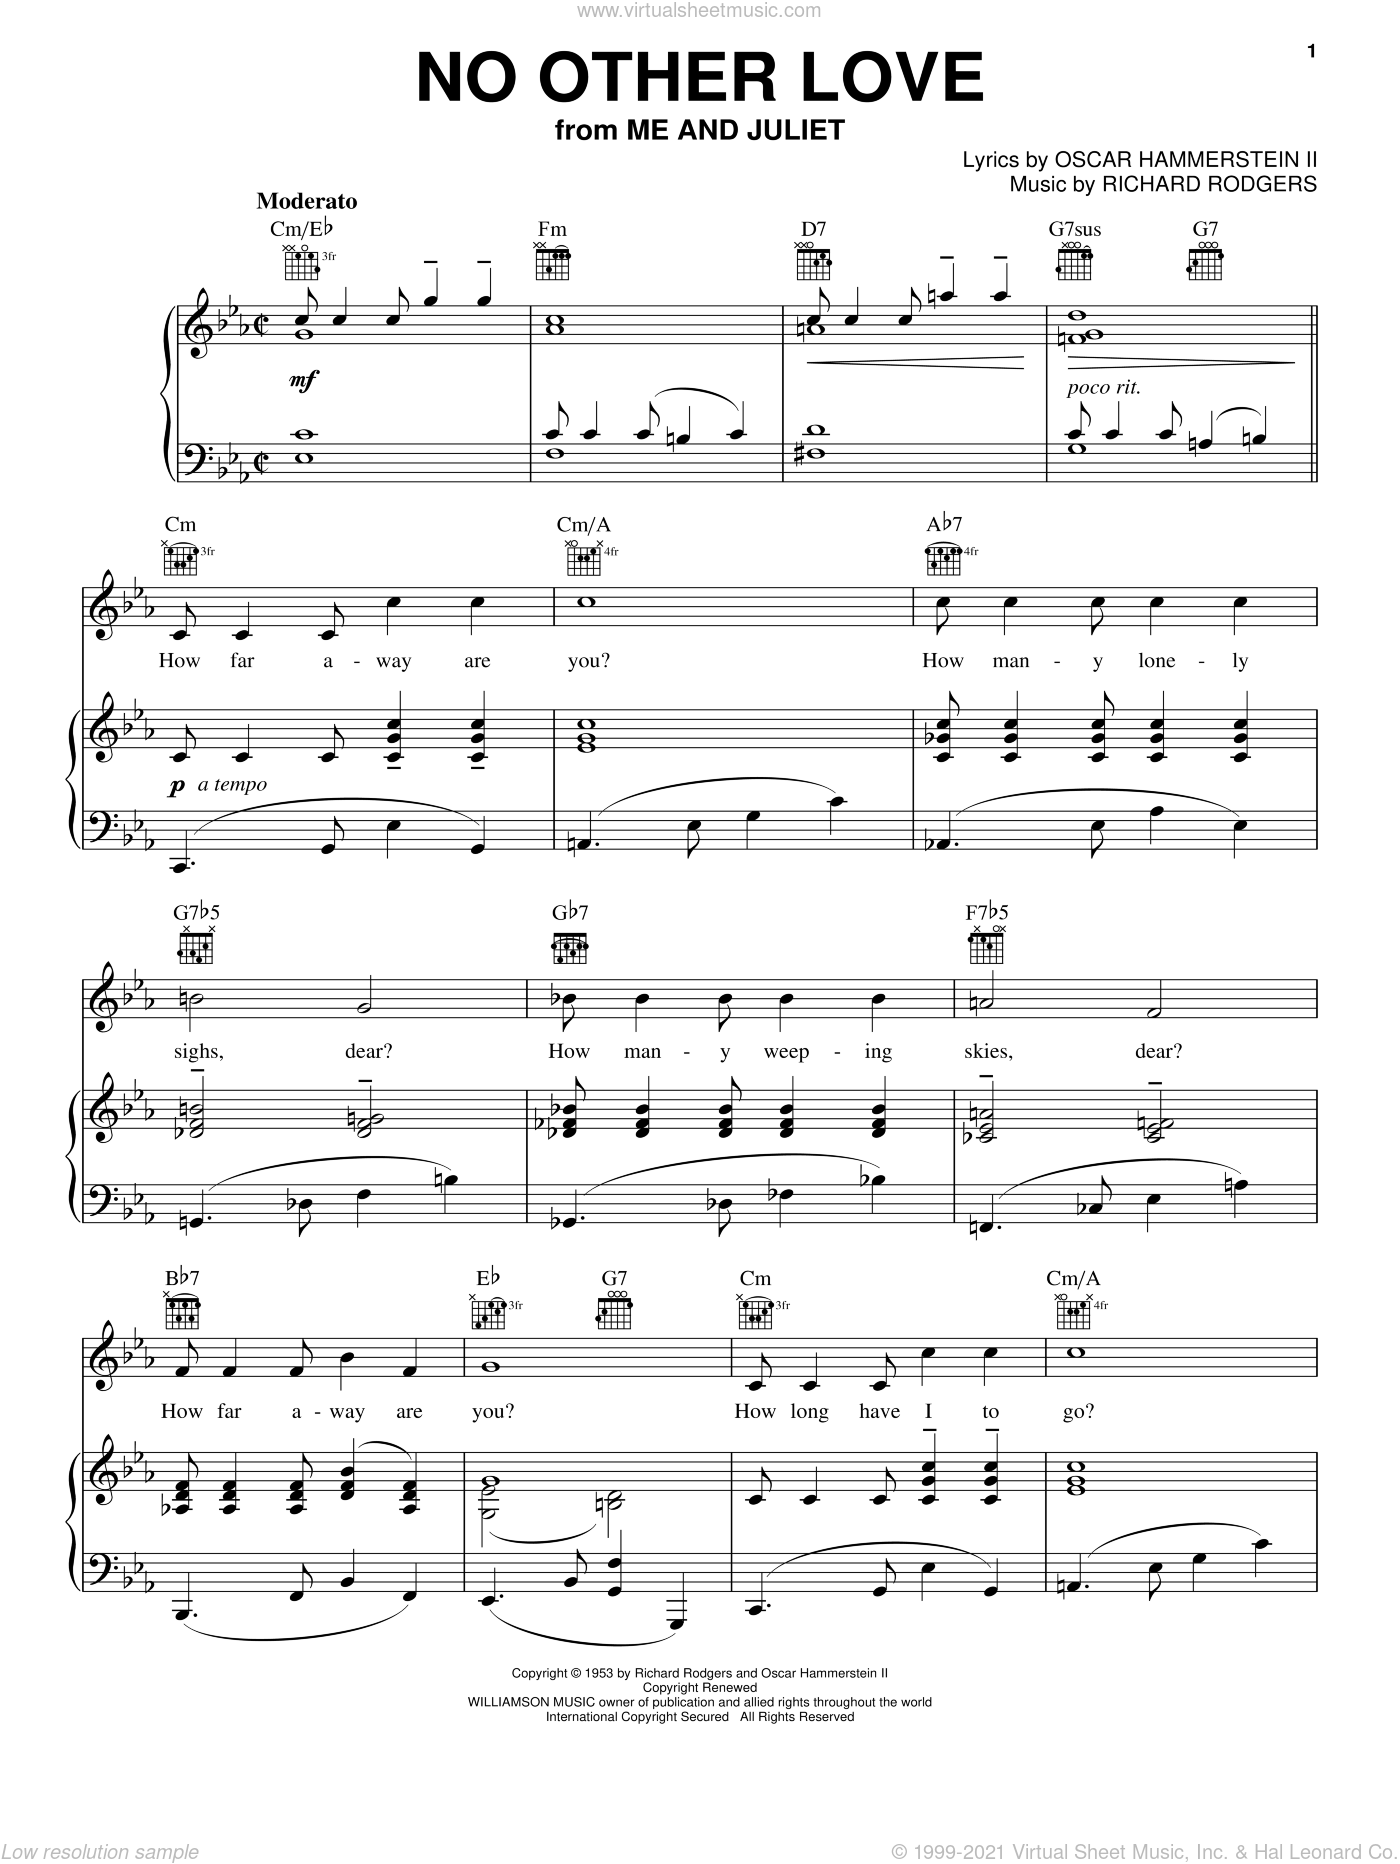 No Other Love sheet music for voice, piano or guitar by Rodgers & Hammerstein, Me And Juliet (Musical), Oscar II Hammerstein and Richard Rodgers, wedding score, intermediate skill level